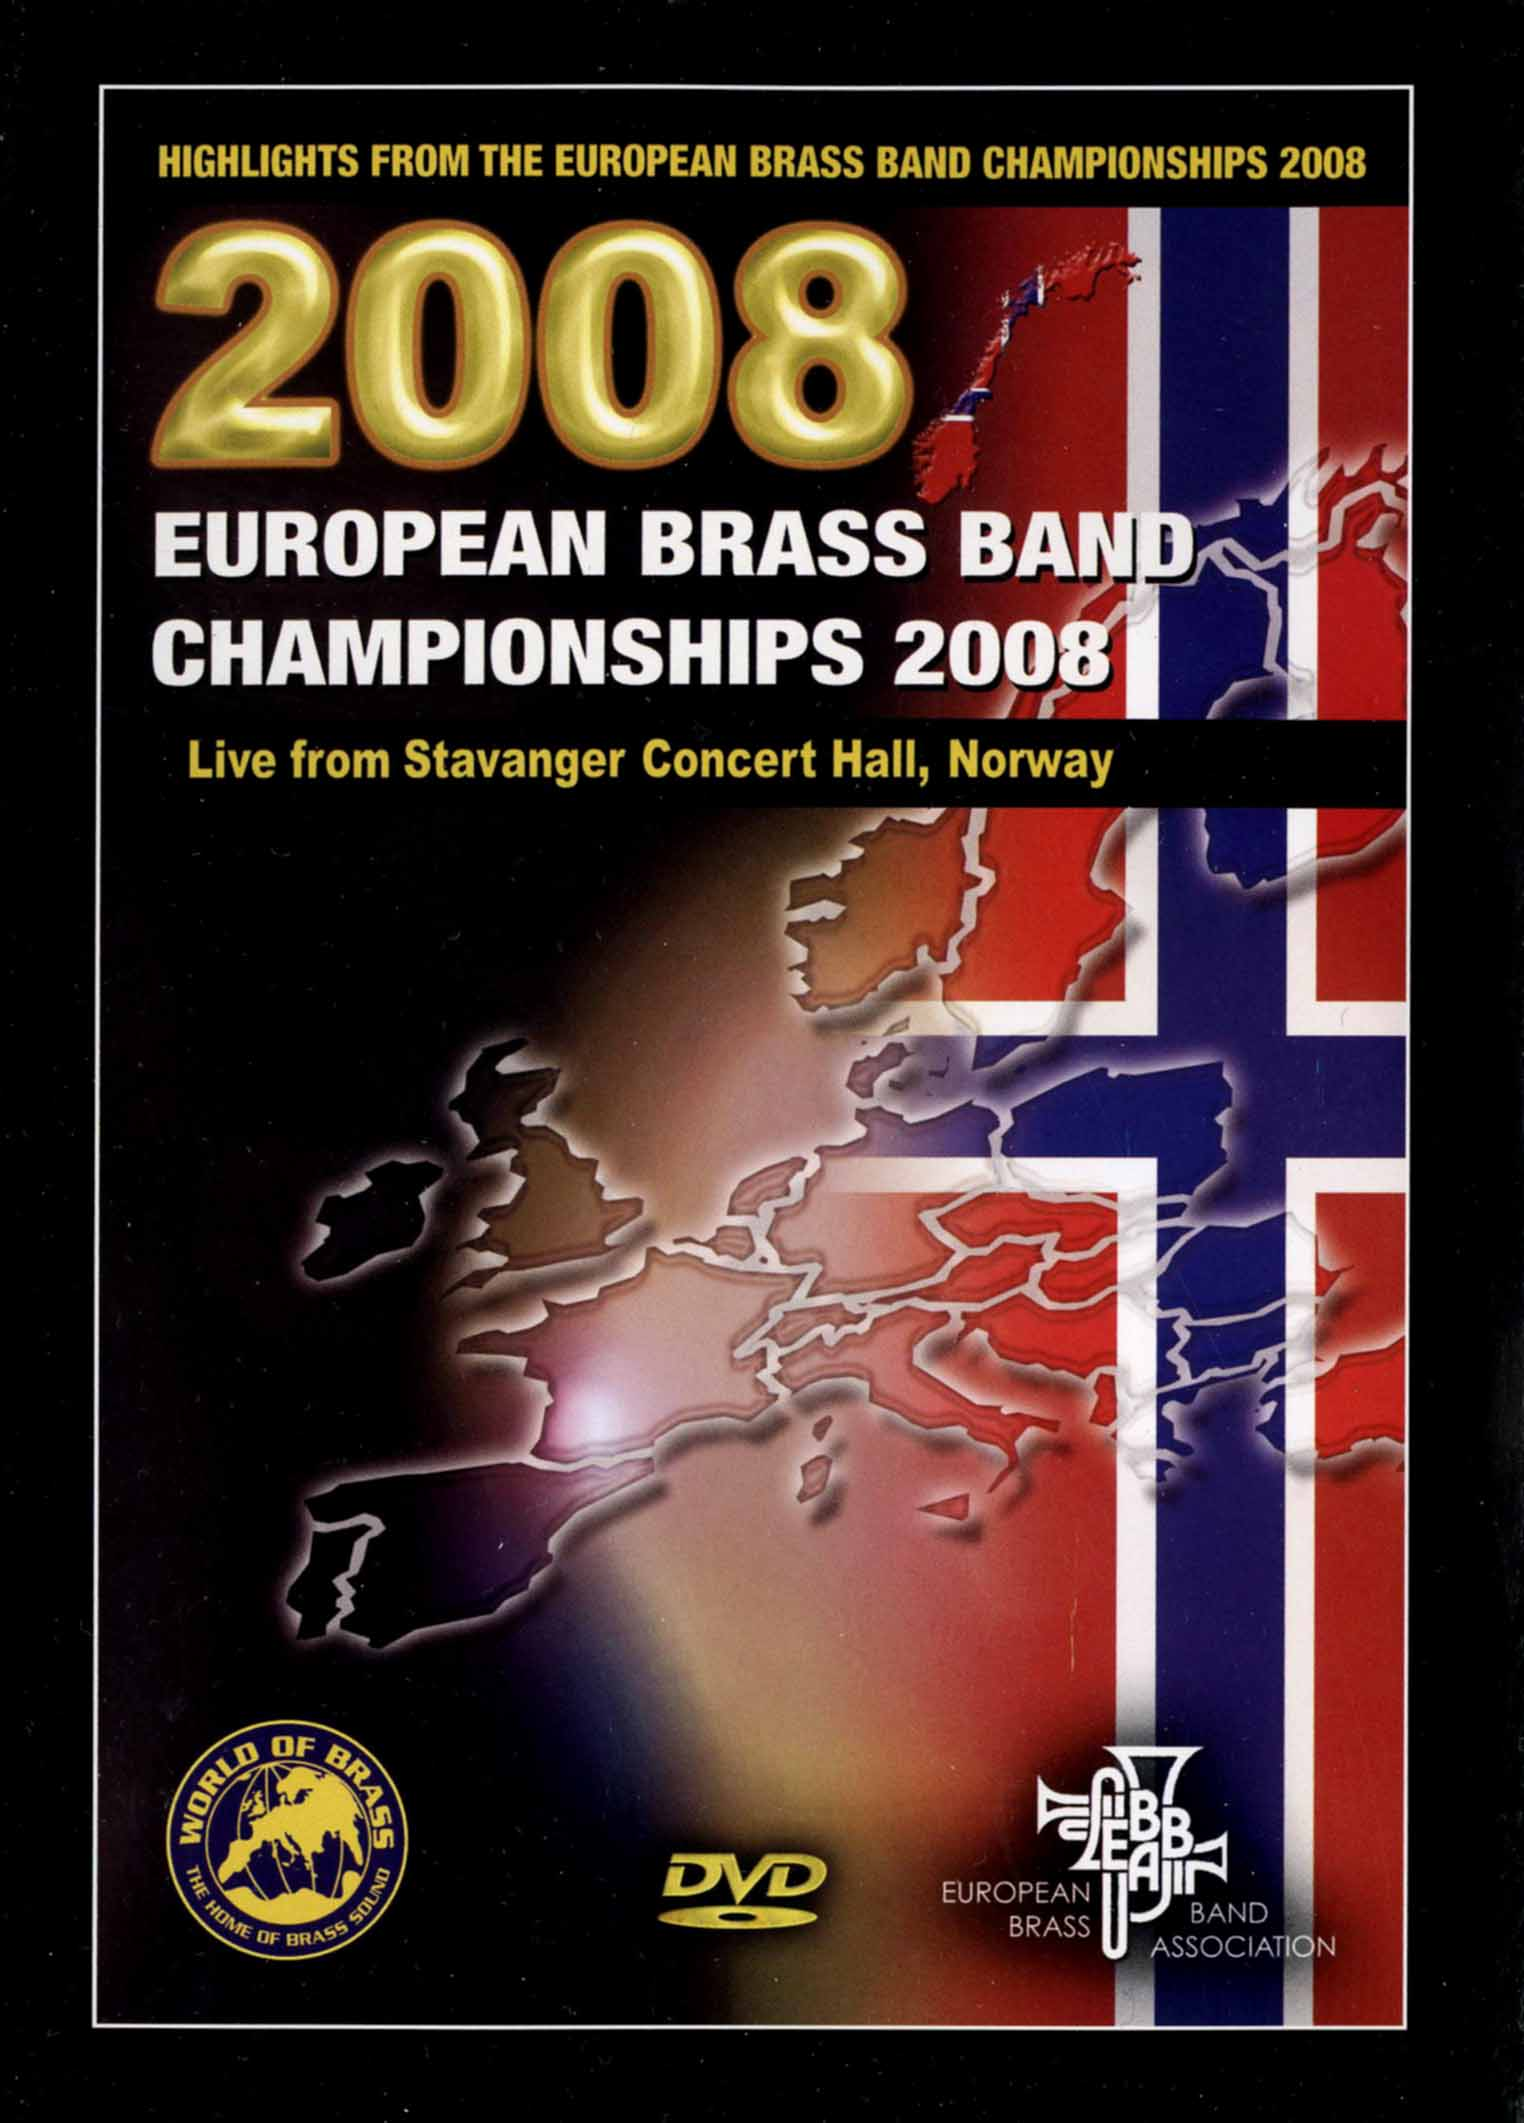 Highlights From the European Brass Band Championships 2008